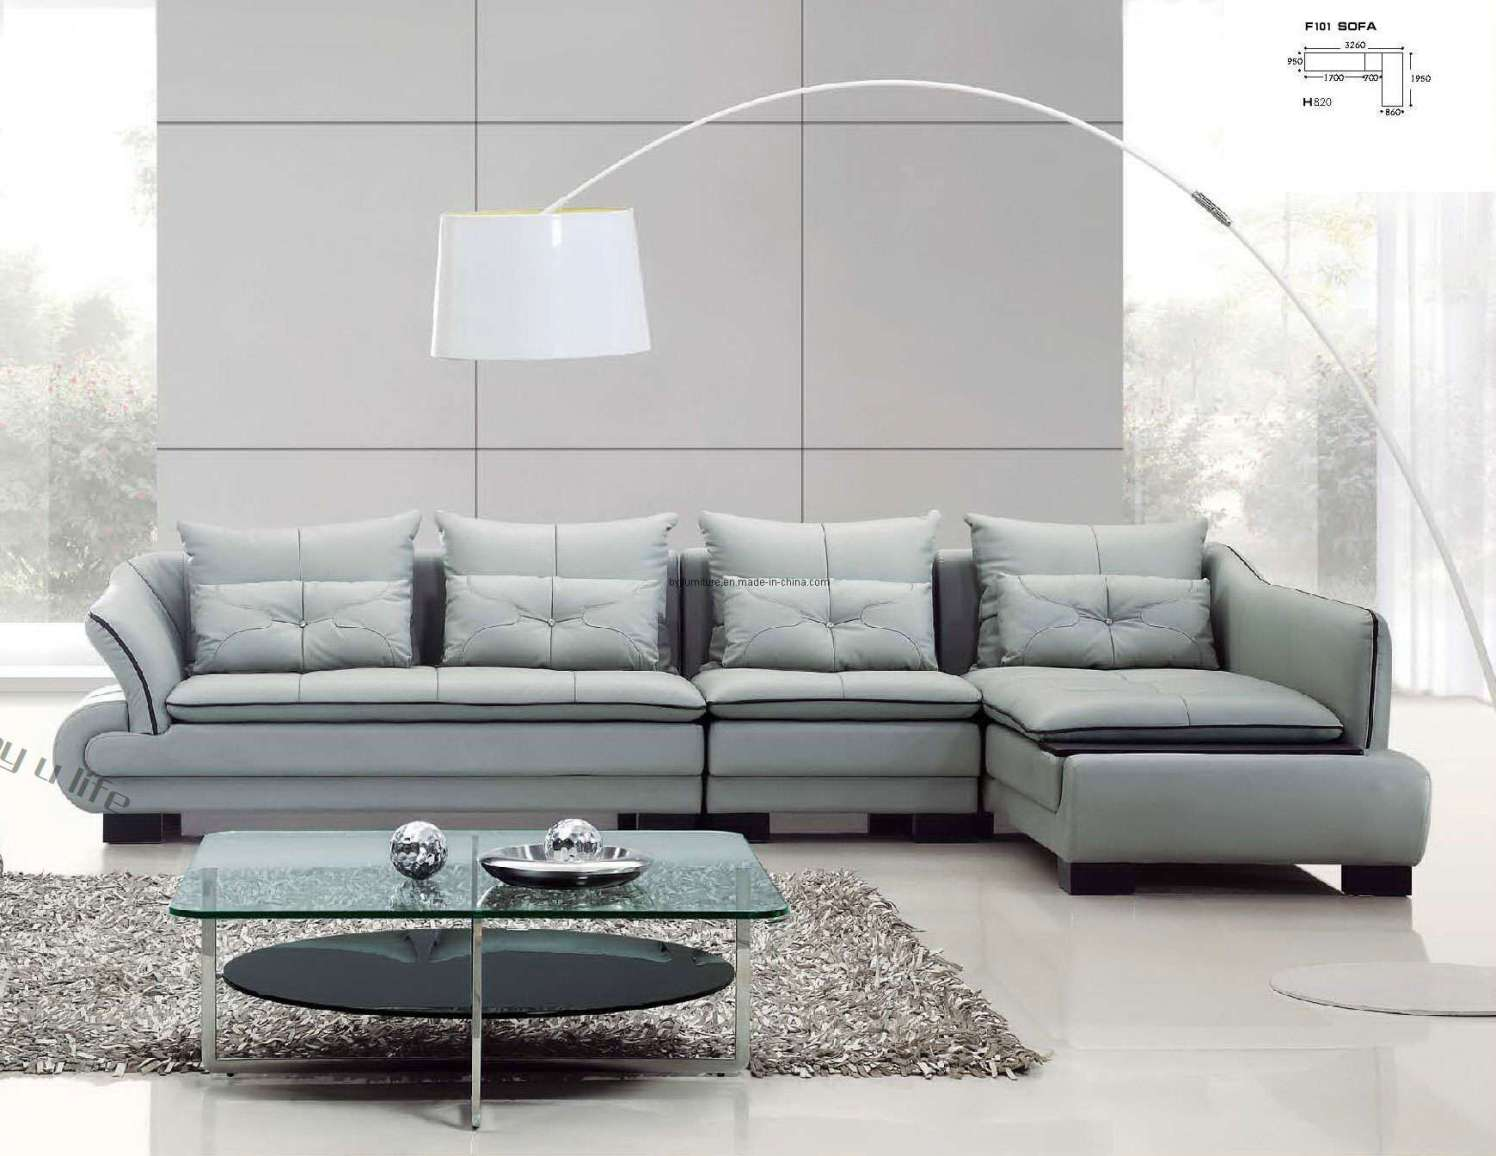 Moderne Sofa Get The Best Of 2016 Design World By Having A Leather